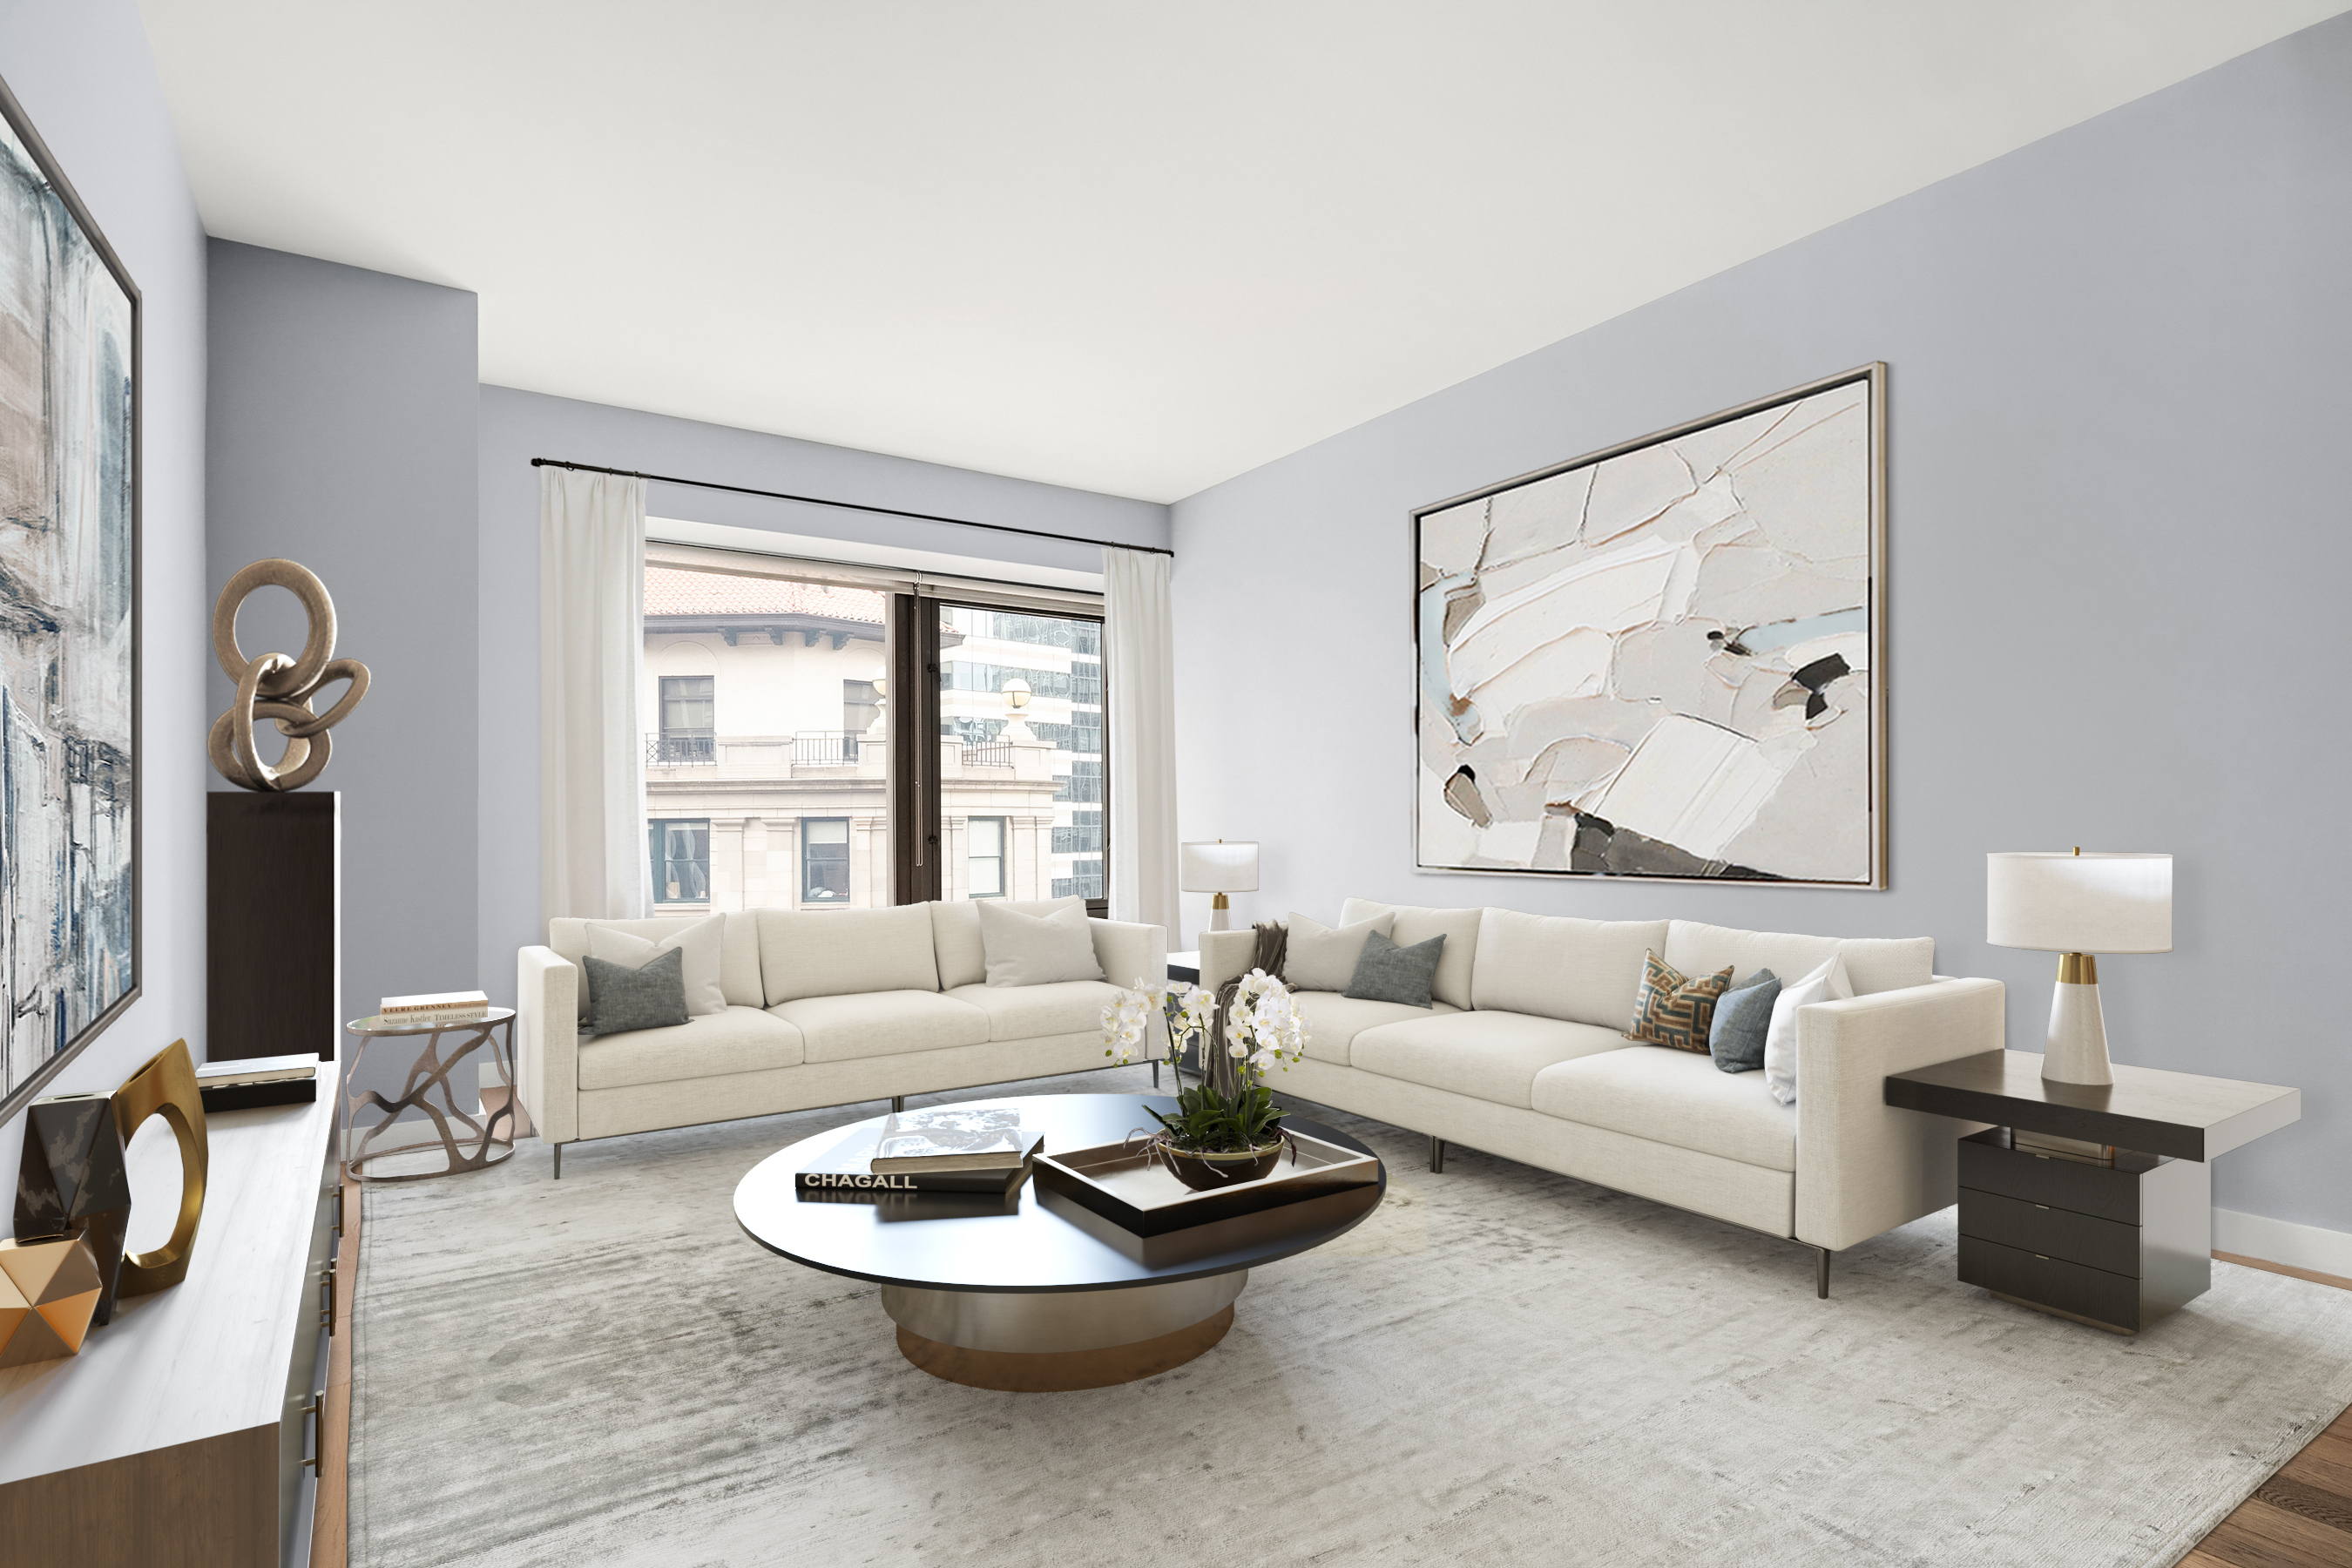 """Once in a lifetime INVESTMENT OPPORTUNITY to own a bright and pristine 826 square foot 1 bedroom / 1.5 bathroom apartment in one of the most coveted buildings in the Financial District! Located on the world-renown Wall Street, Apartment 26K has a great tenant in place.  Owner is a MOTIVATED SELLER.  It won't last long!Upon entering, you are welcomed home to a gorgeous open living area with soaring 10'3"""" ceilings and beautiful light that pours in through the oversized 6-foot windows with custom marble window sills. The open kitchen is a perfect place to cook and entertain, featuring top of the line finishes and appliances including a Bosch oven, Liebherr refrigerator and Miele dishwasher.The large bedroom fits a king-size bed, has a custom California walk in closet, and a chic en-suit bathroom featuring a double vanity and deep-soaking bathtub. With wide plank flooring throughout, a brand new LG washer/dryer set, and a completely redone powder room, unit 26K embraces New York living and gives you a fantastic escape.75 Wall offers a 24/7 hour staff with concierge hotel service including housekeeping and valet laundry. Residents have access to parking, an indoor/outdoor sky terrace with breathtaking 360 degree city views, and a state of the art fitness center, yoga and pilates studio. This prime Wall Street location is just steps away from some of the finest restaurants and bars in lower Manhattan, and offers world class shopping at Brookfield Place and The World Trade Center Oculus which is home to one of the most diverse retail collections in New York City encompassing more than 100 fashion, beauty, and lifestyle brands. The South Street Seaport is just a short distance away with its many shops and eateries situated on the East River while you enjoy the stunning views of Brooklyn and Manhattan's iconic bridges. Unit 26k is a MUST-SEE!"""